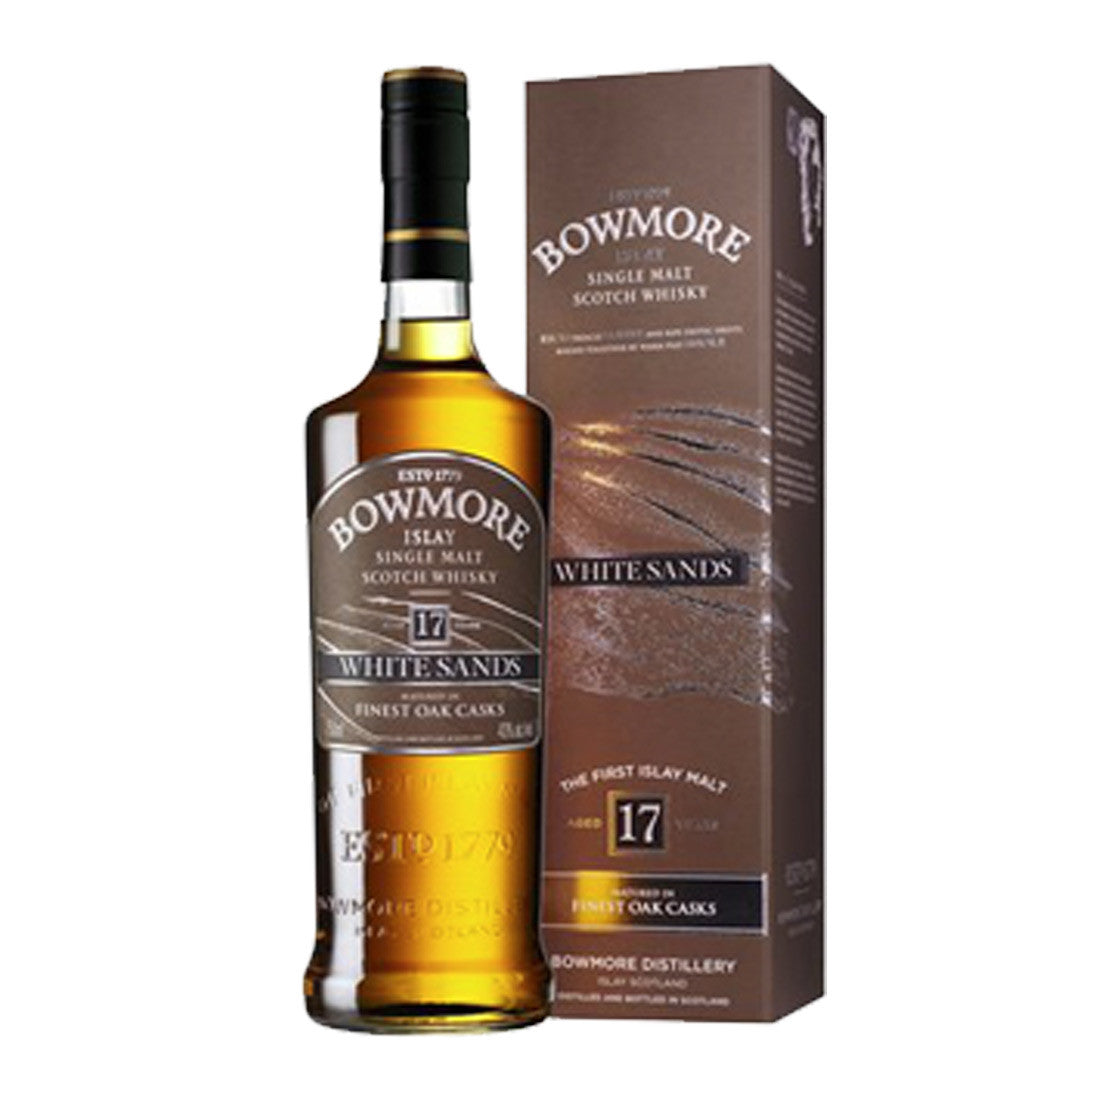 Bowmore 17 Years White Sands Islay Single Malt Scotch Whisky - 700ml Whiskey - Drinkka Alcohol Delivery Best Whiskey Wine Gin Beer Vodkas and more for Parties in Makati BGC Fort and Manila | Bevtools Bar and Beverage Tools